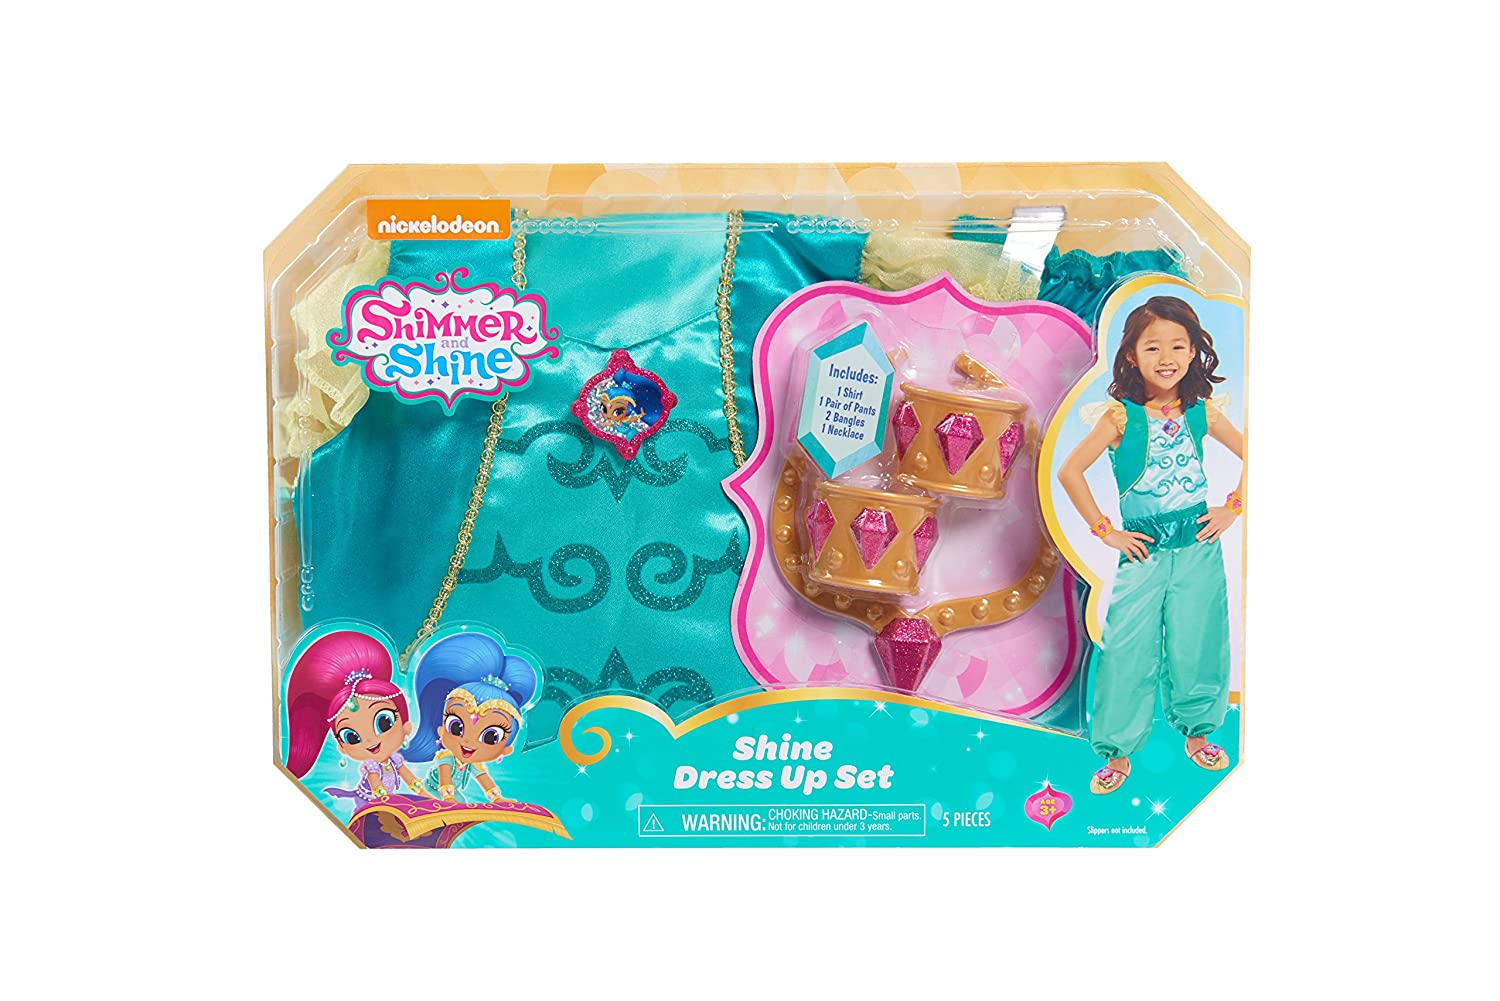 Amazon.com: Shimmer and Shine Just Play Dress Up Box Set: Toys & Games